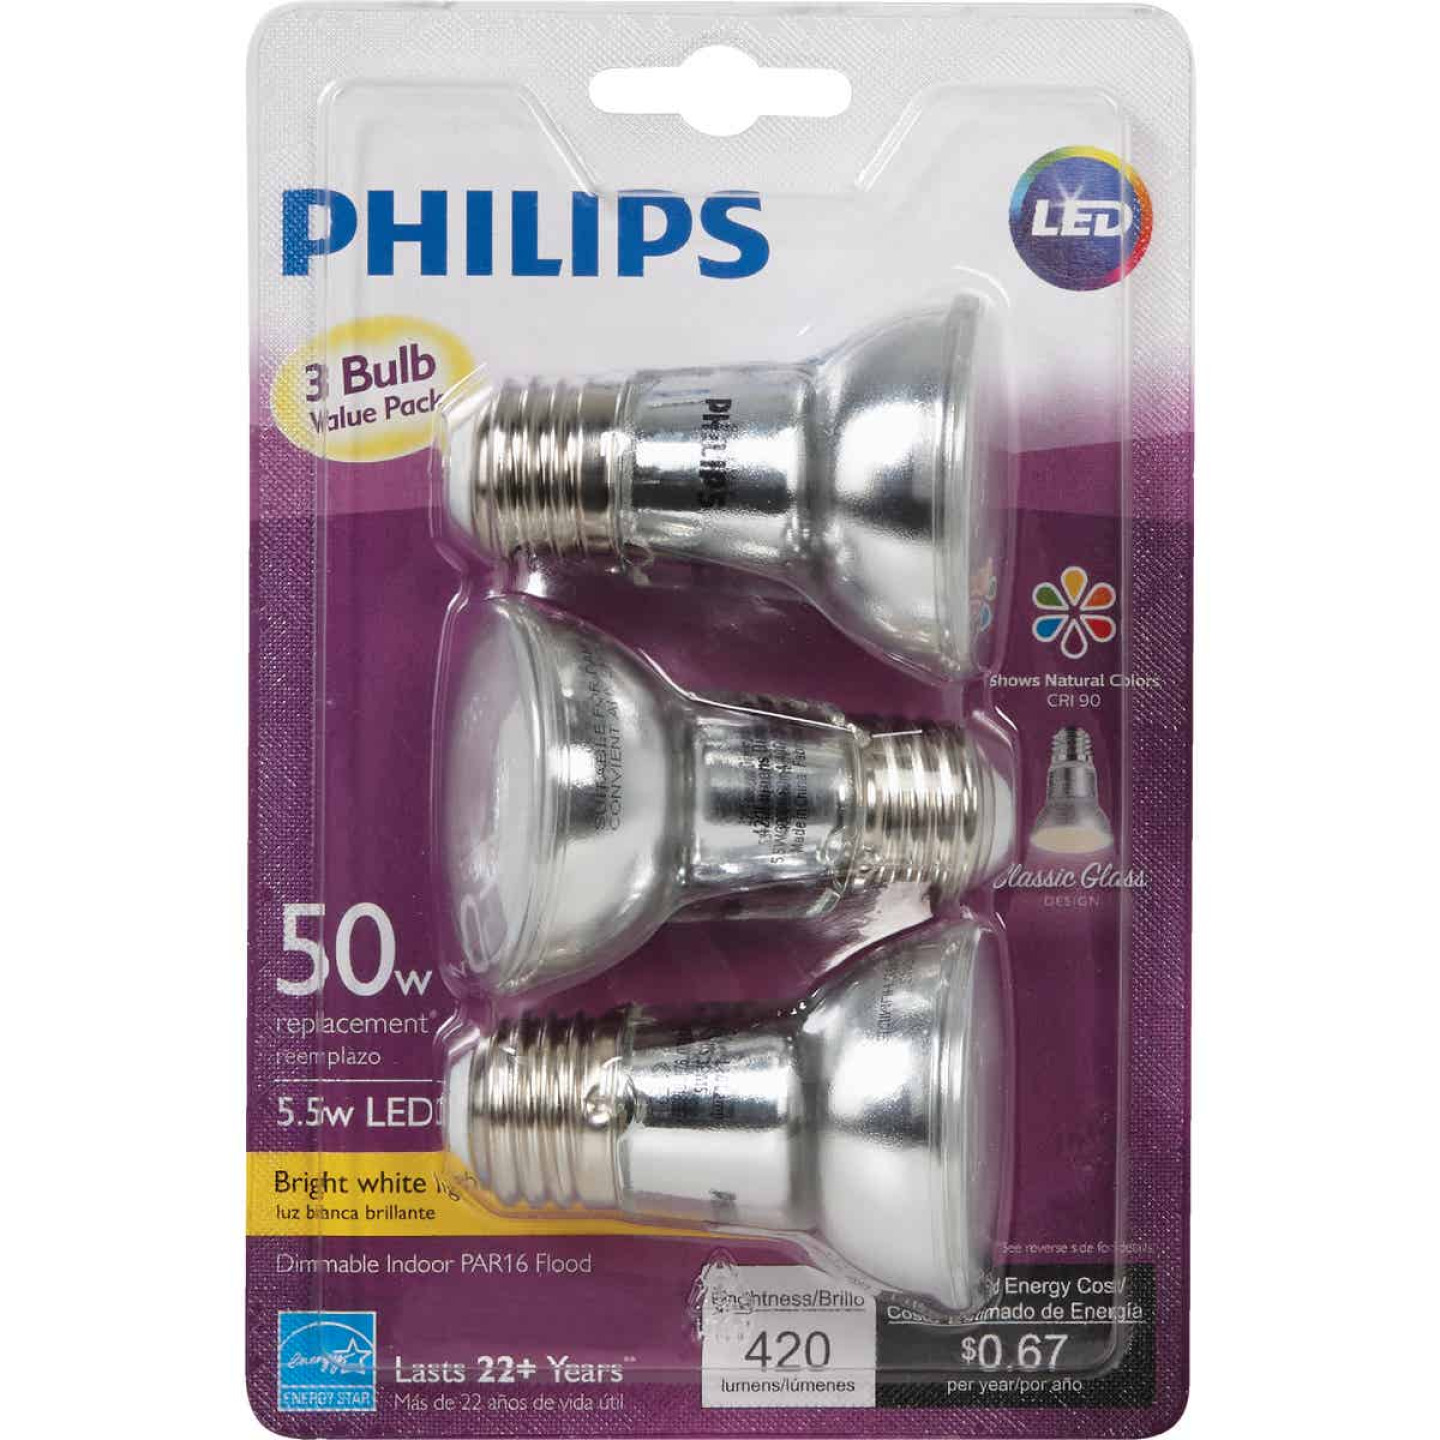 Philips 50W Equivalent Bright White PAR16 Medium Dimmable LED Floodlight Light Bulb (3-Pack) Image 2